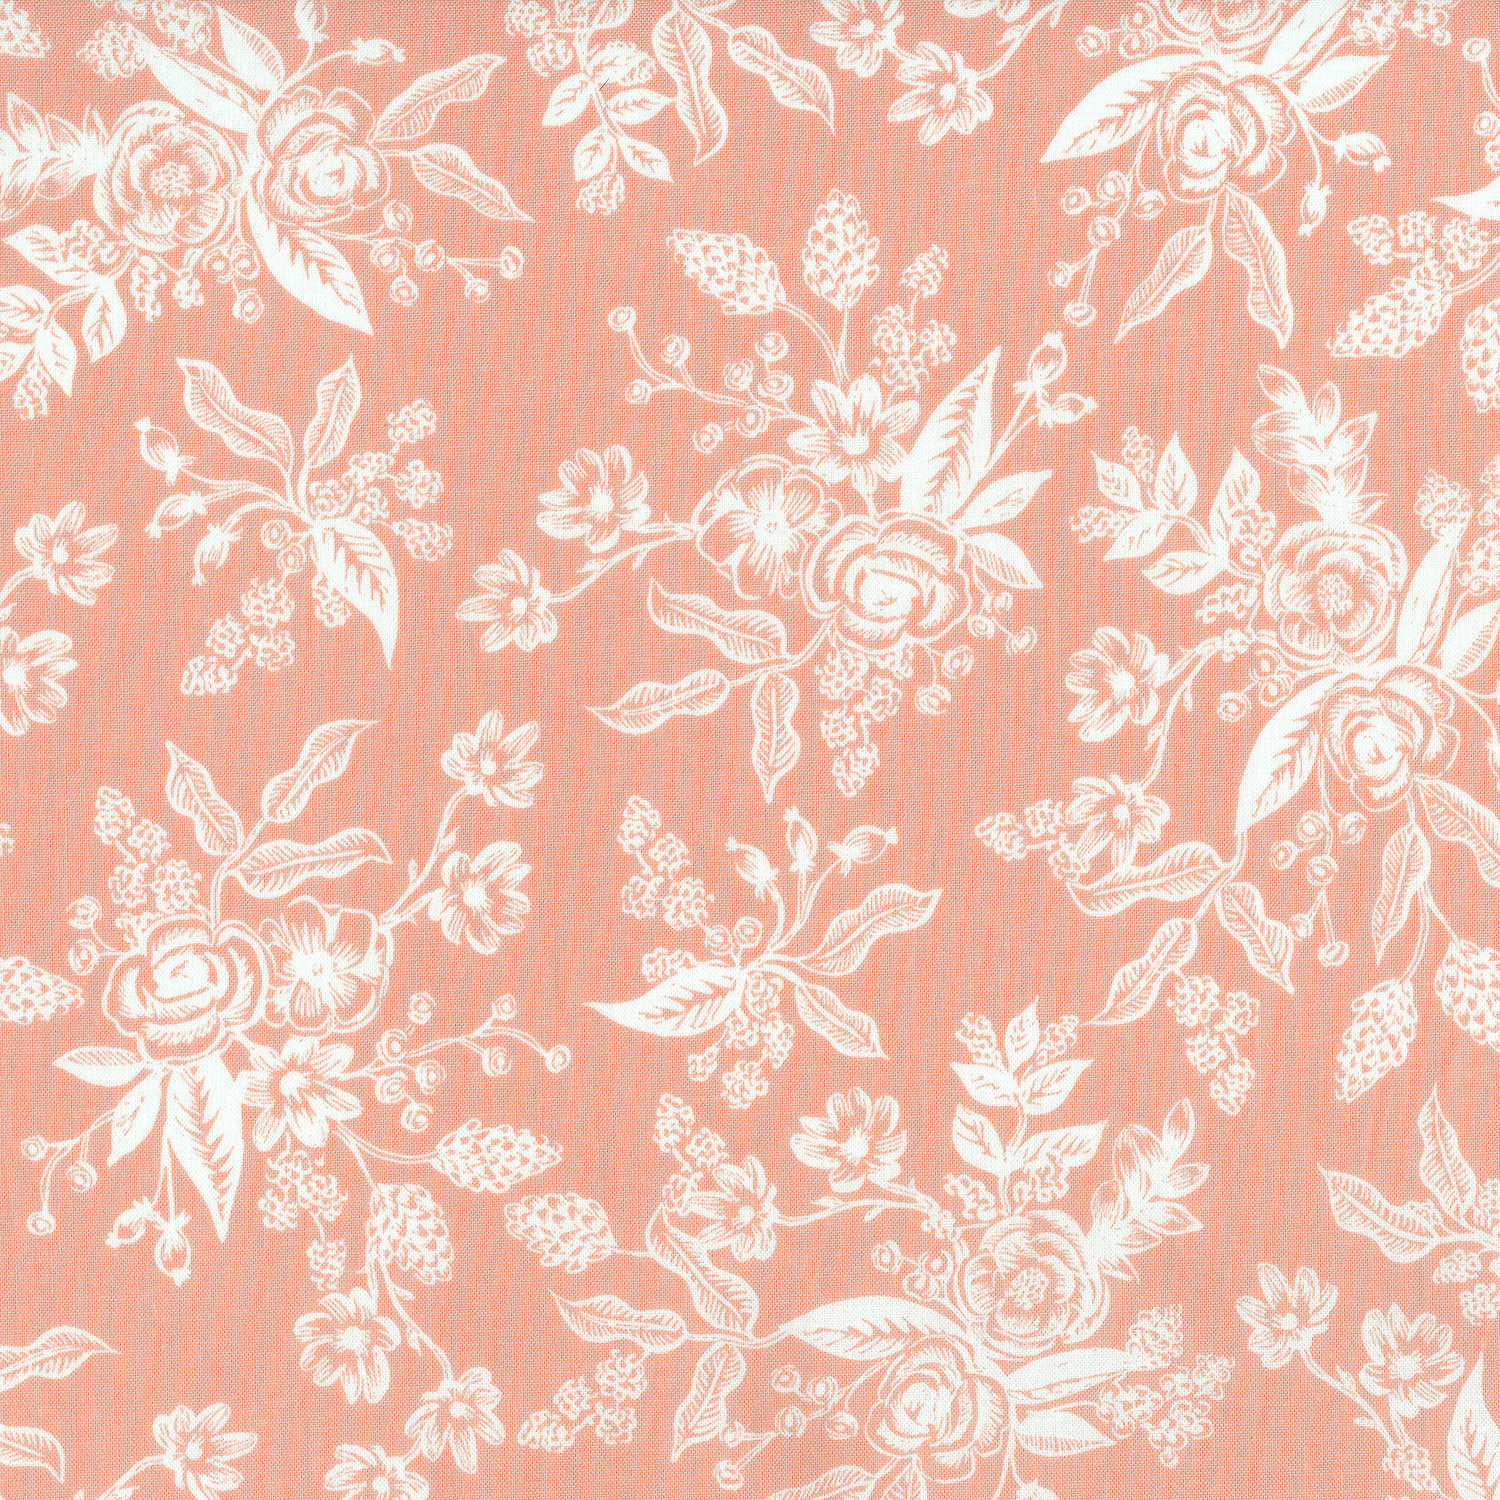 Toile, Peach, English Garden